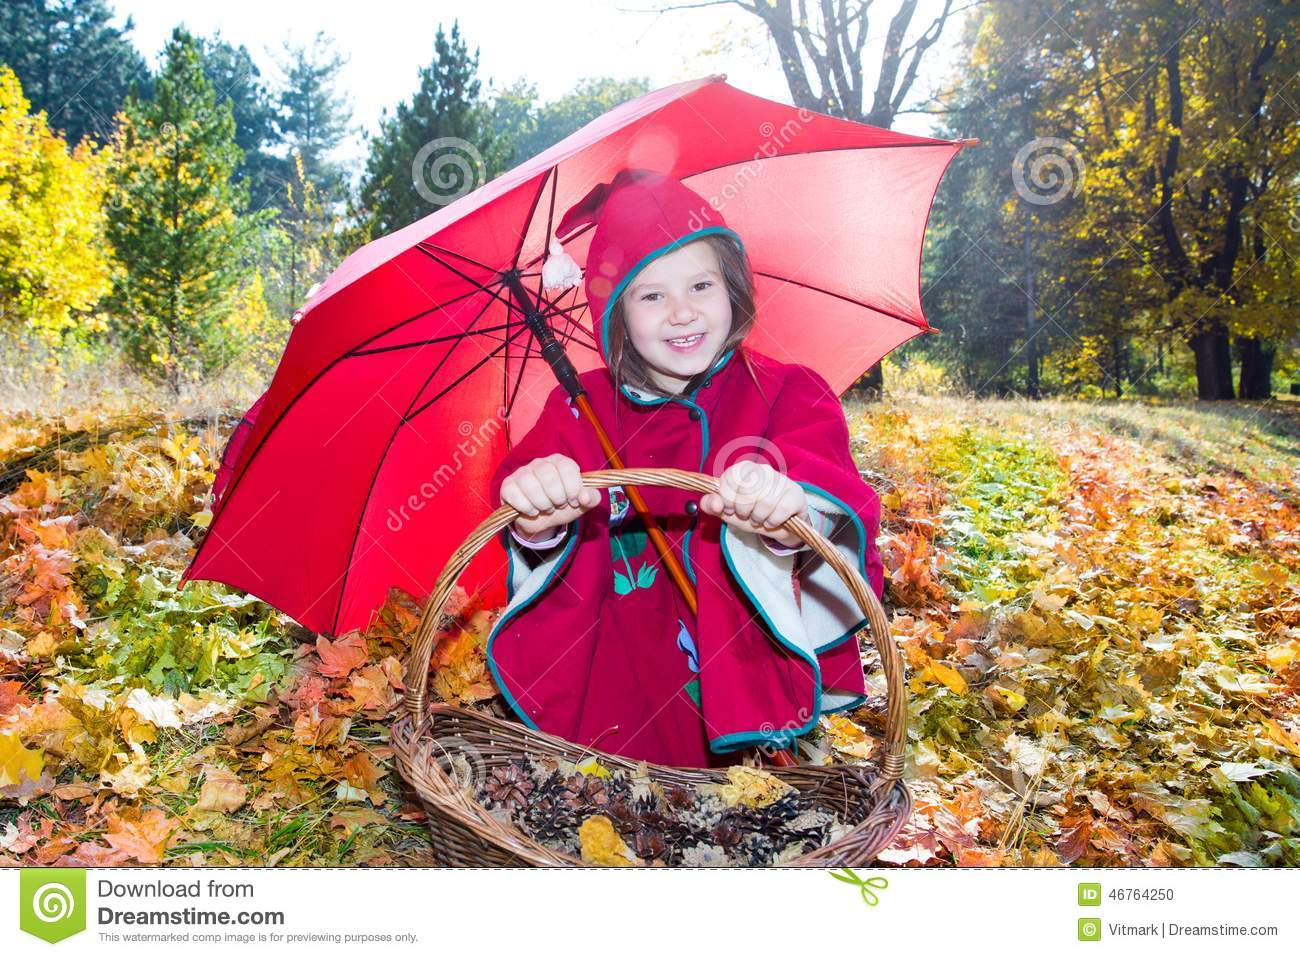 cute child girl playing with umbrella in leaves in autumn